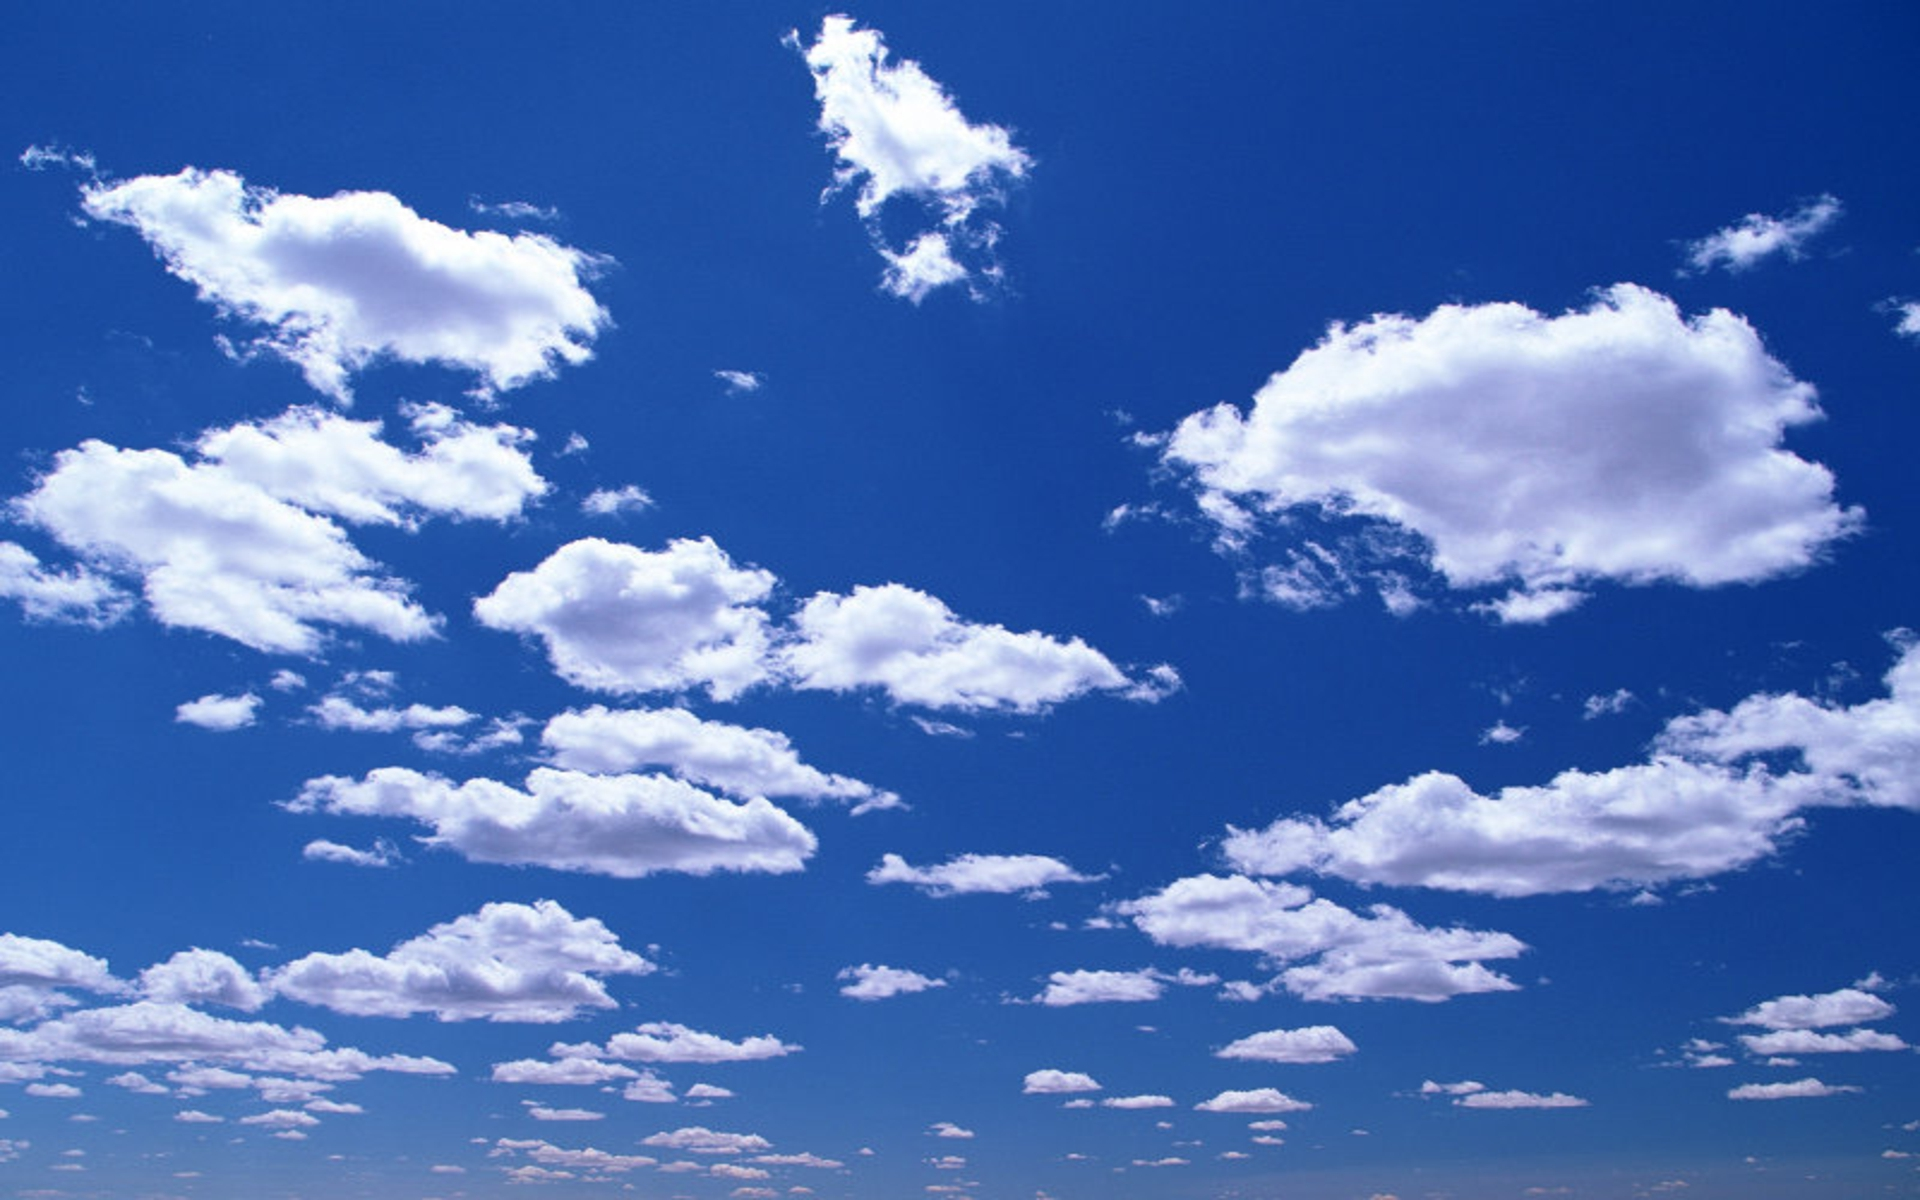 Cloud hd wallpapers full hd pictures for Cloud wallpaper